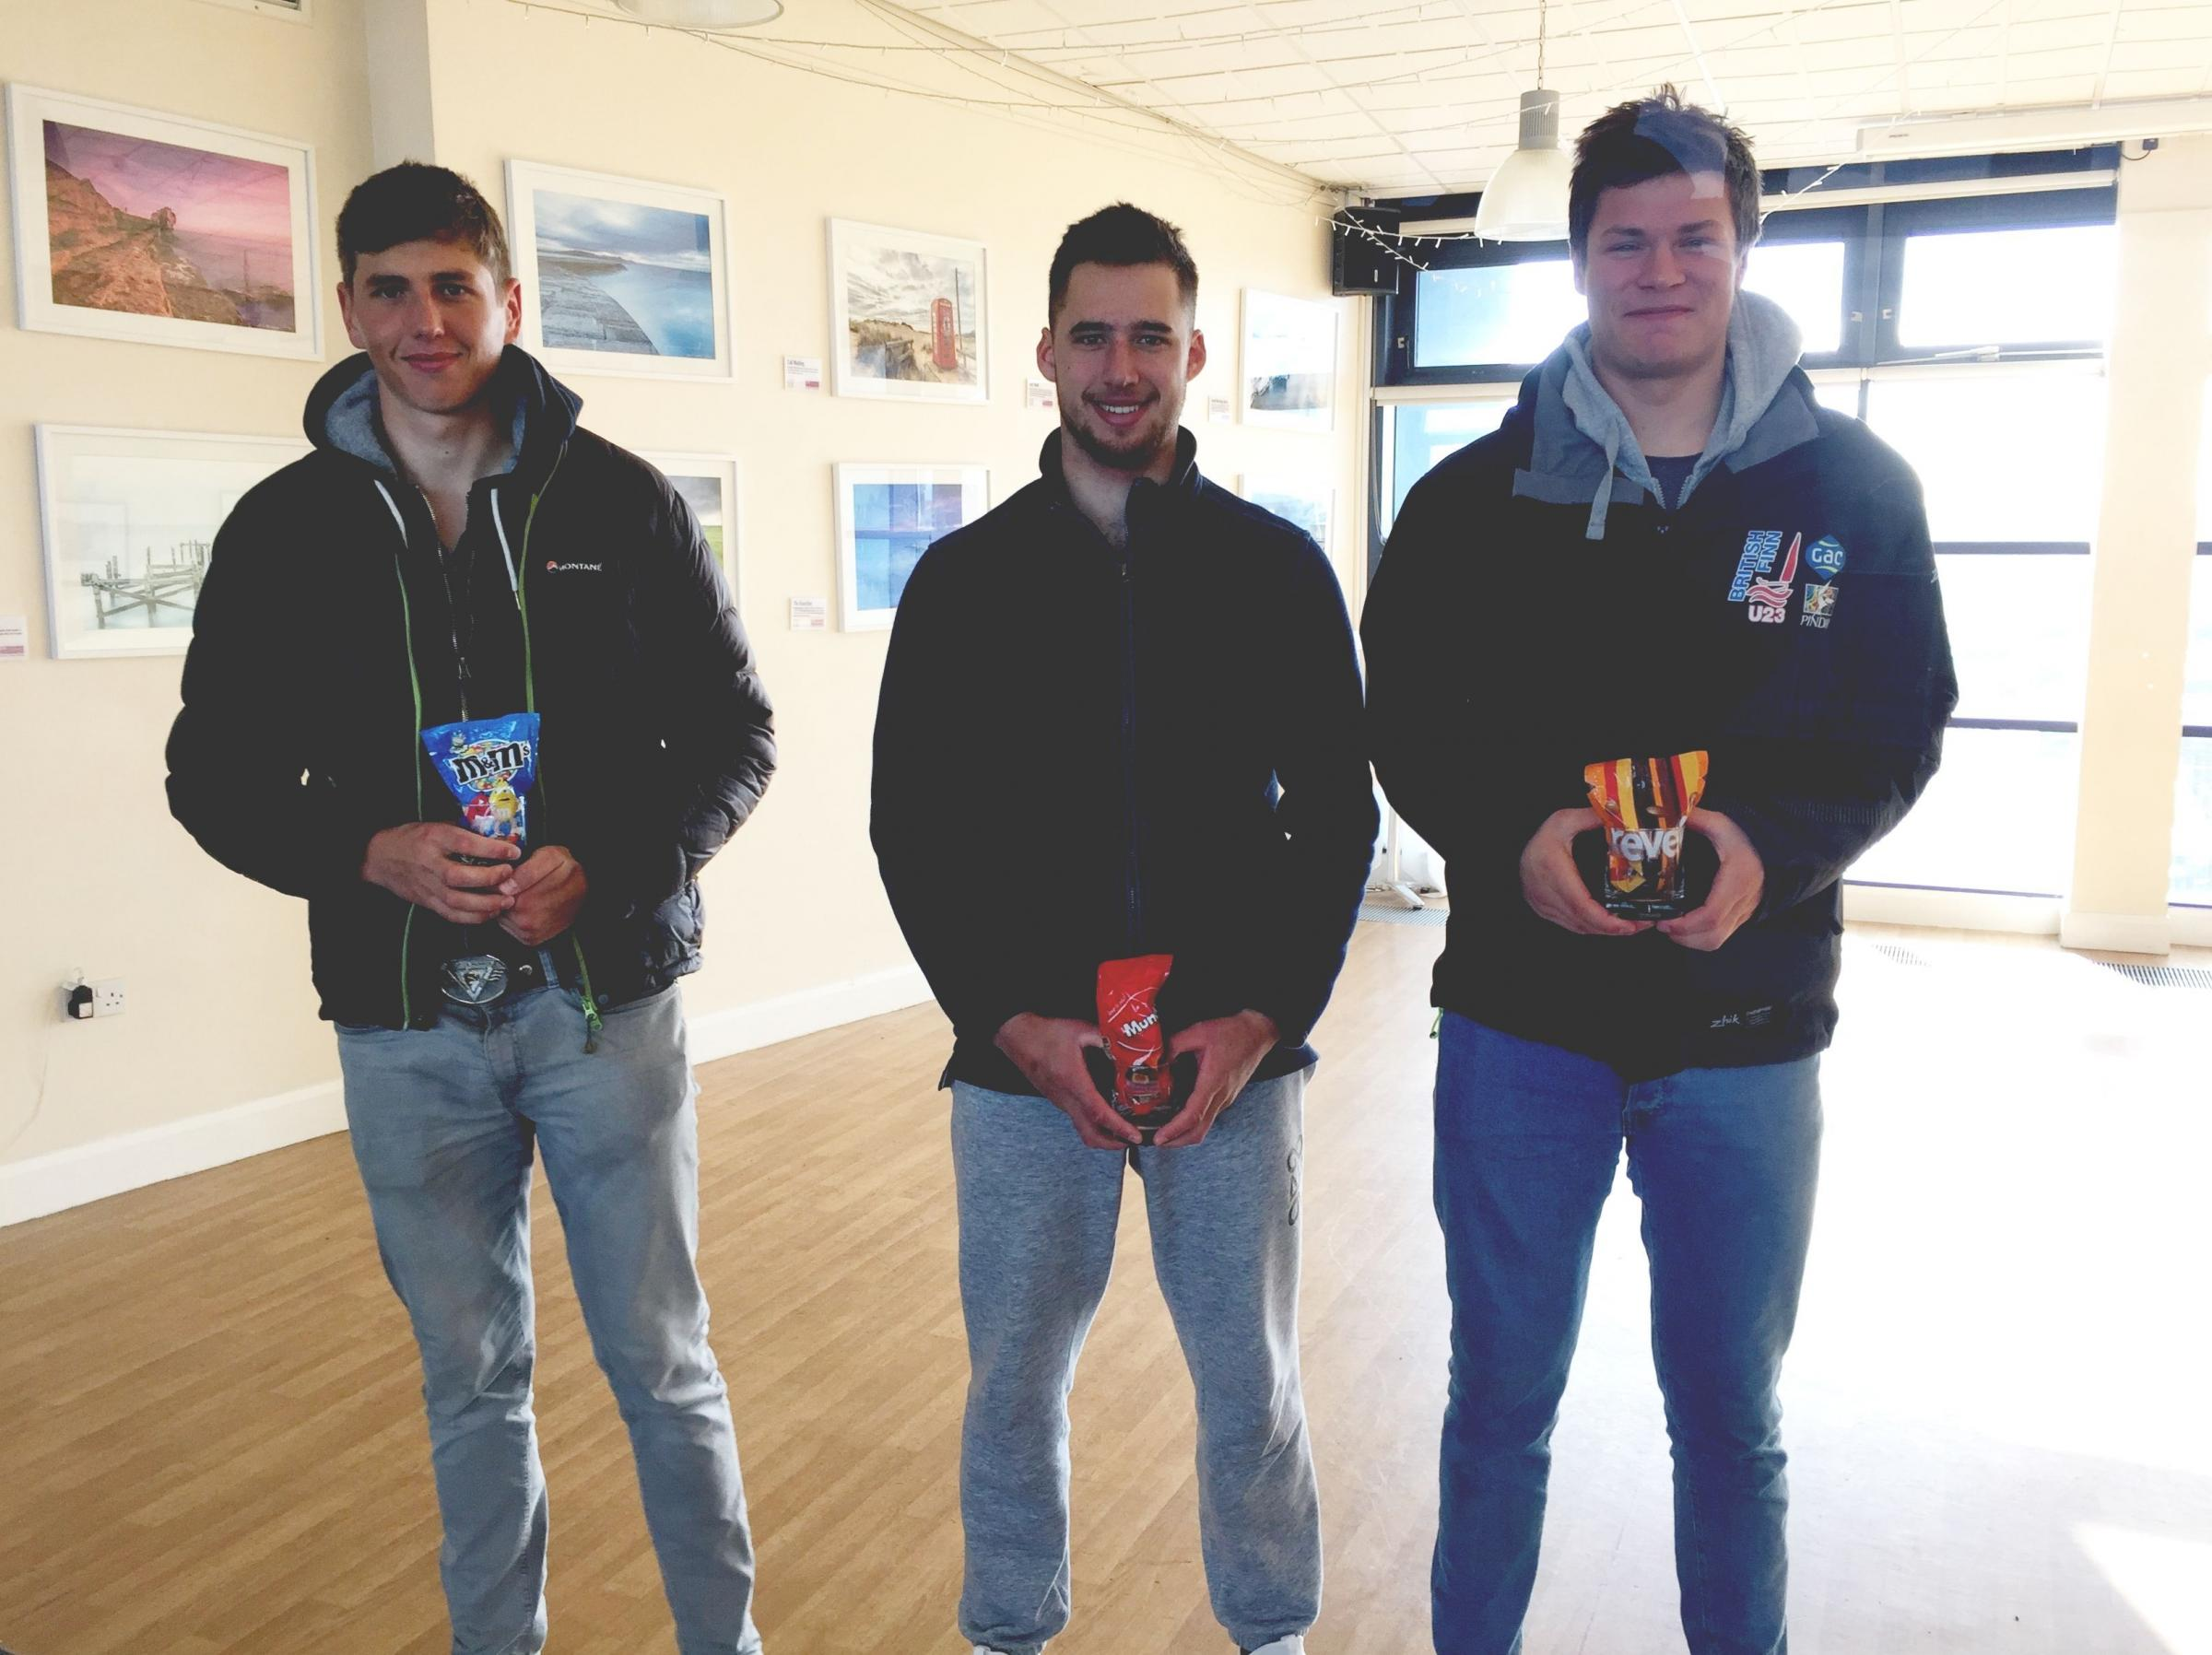 FINN CLASS STARS: From left: Hector Simpson (second), Cameron Tweedle (third) and Callum Dixon (first)